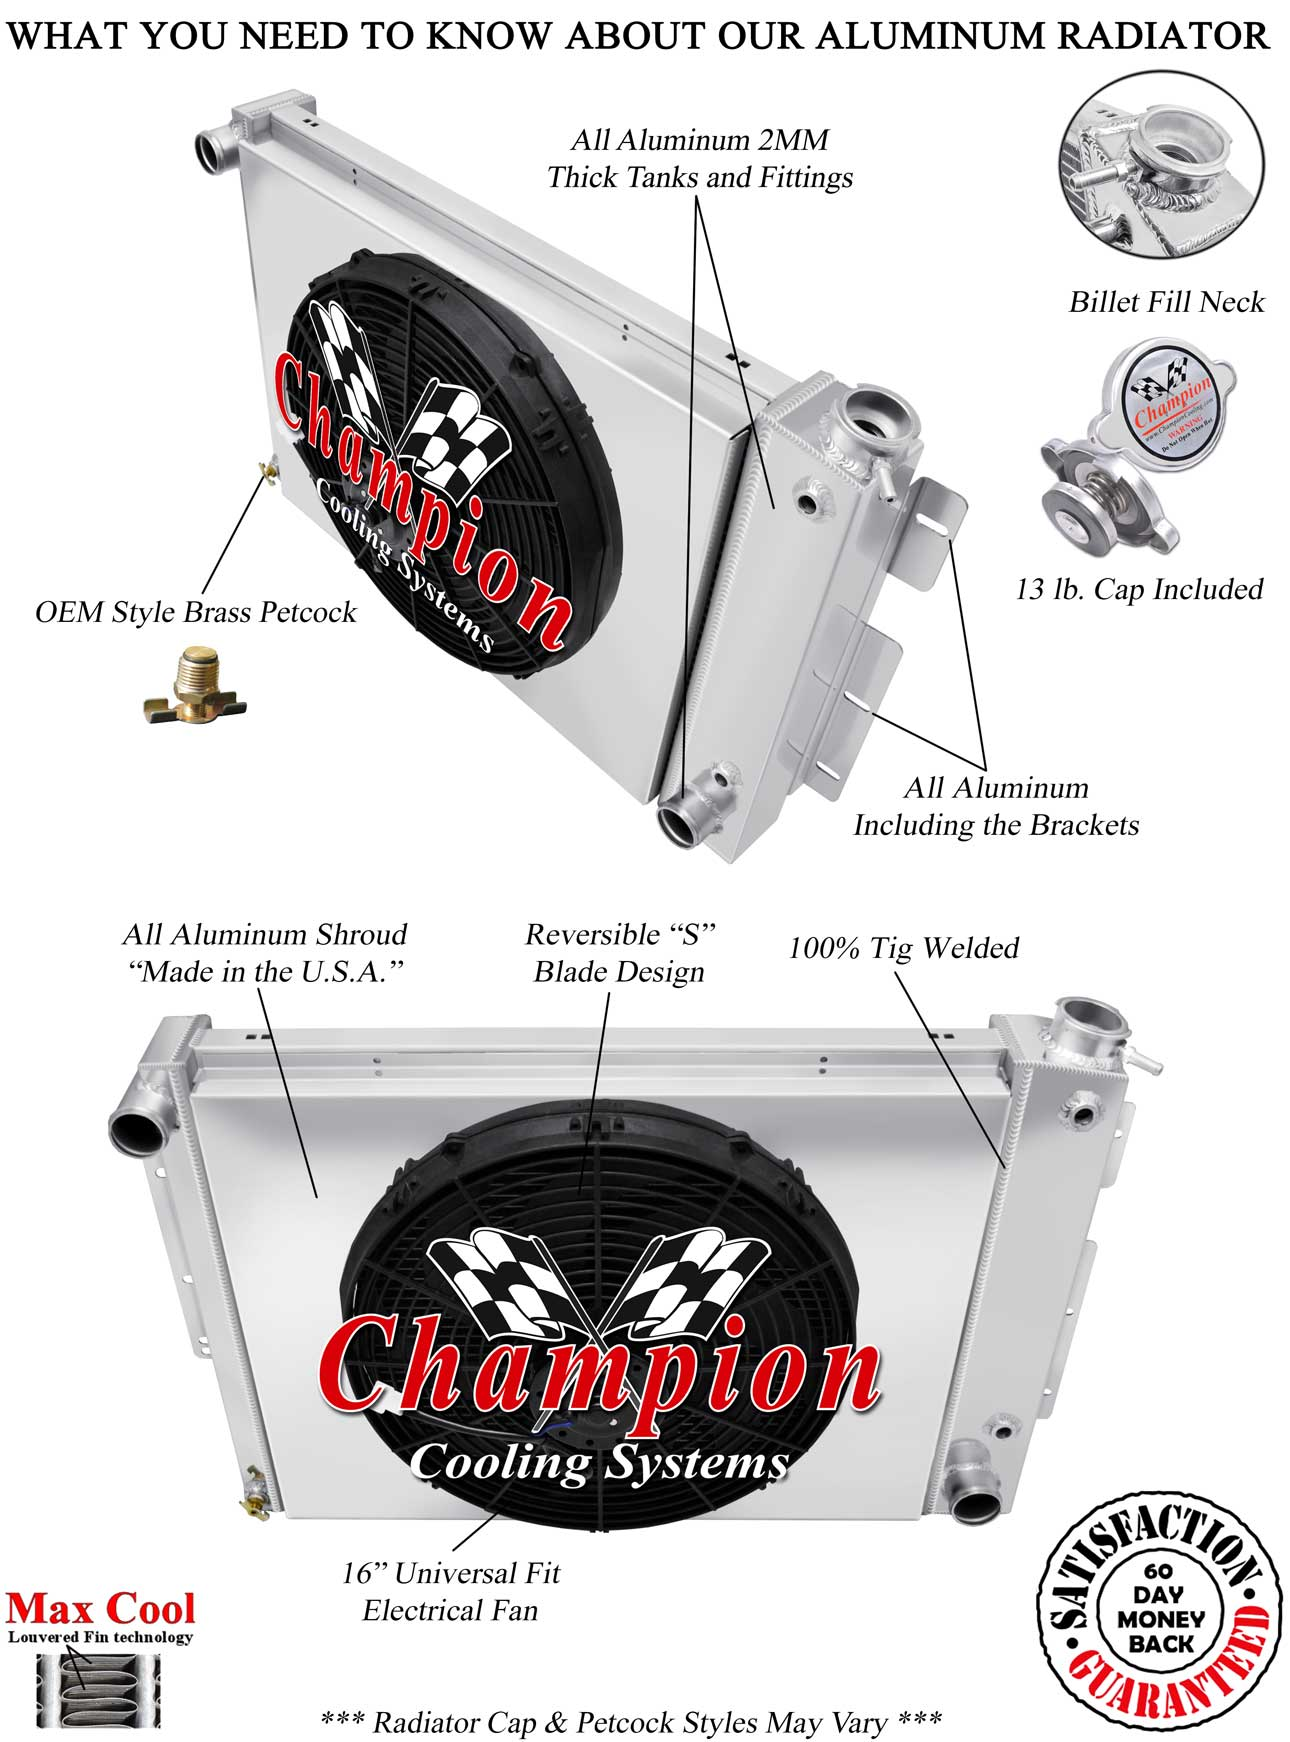 https://www.championcooling.com/photos/Photos%20White/With%20Fans/W-Shroud/370/16/370_1fs_d_w.jpg